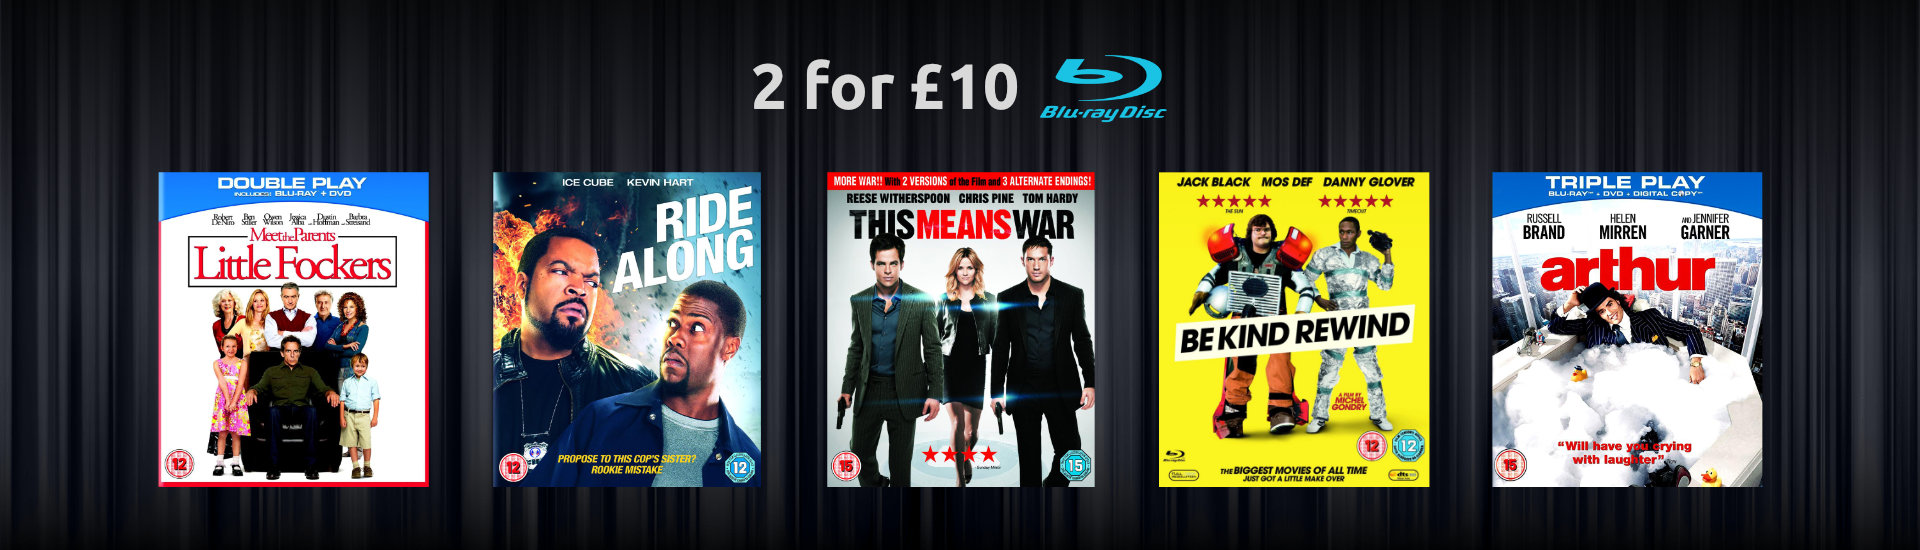 2 for £10 Comedy